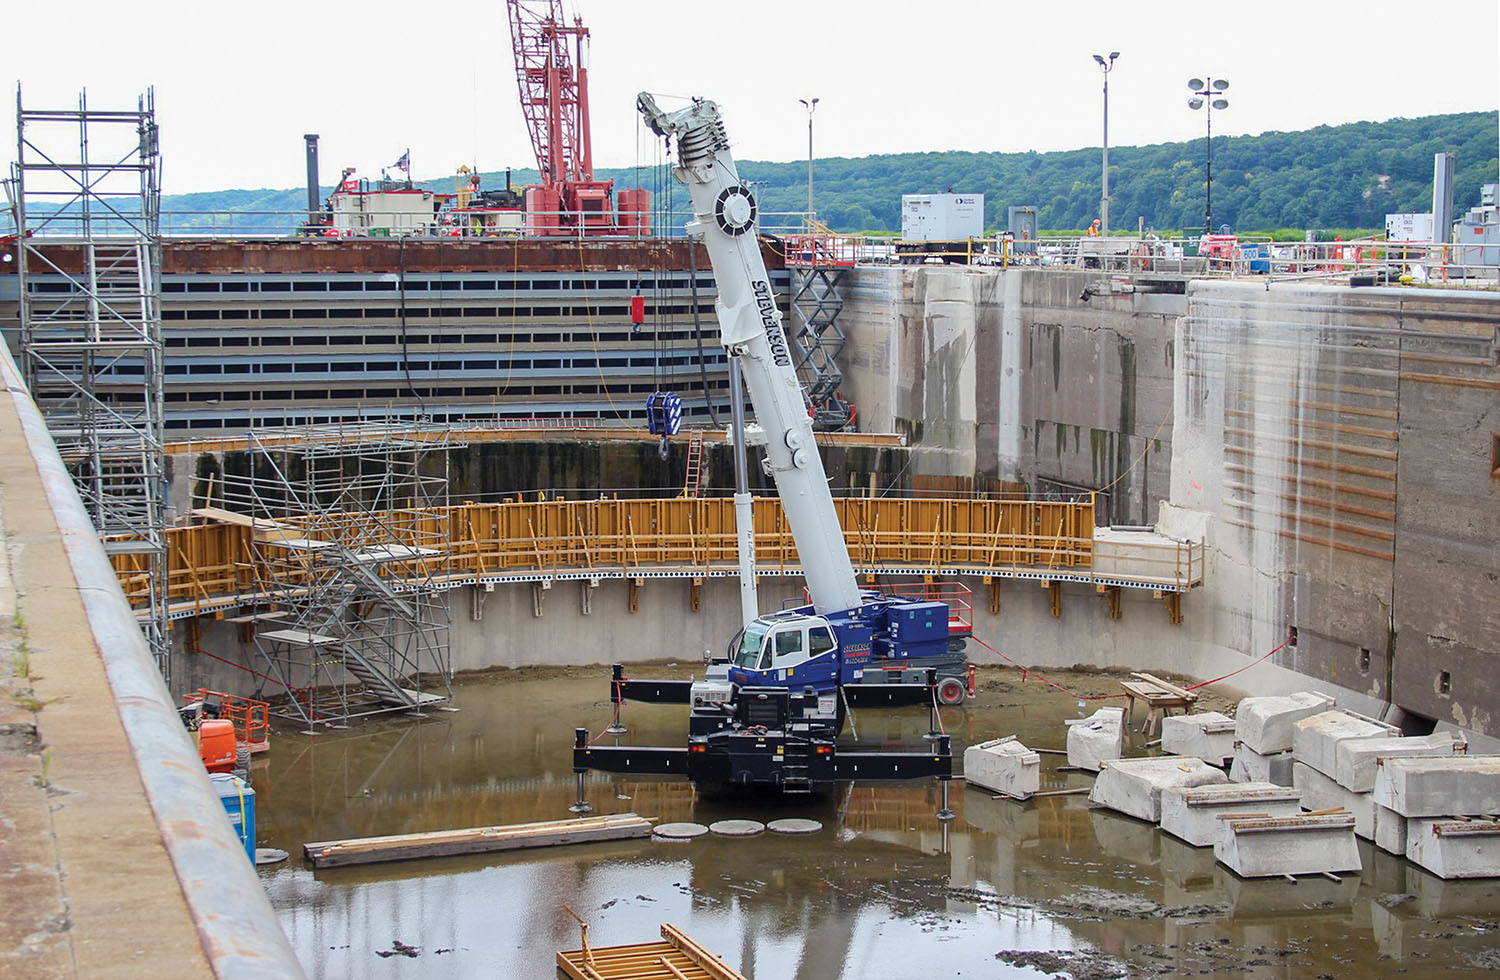 New forms being placed on the upper gate sill at Starved Rock Lock and Dam; the blocks from the old upper sill that were cut and removed are shown. (Photo courtesy of the Rock Island Engineer District)